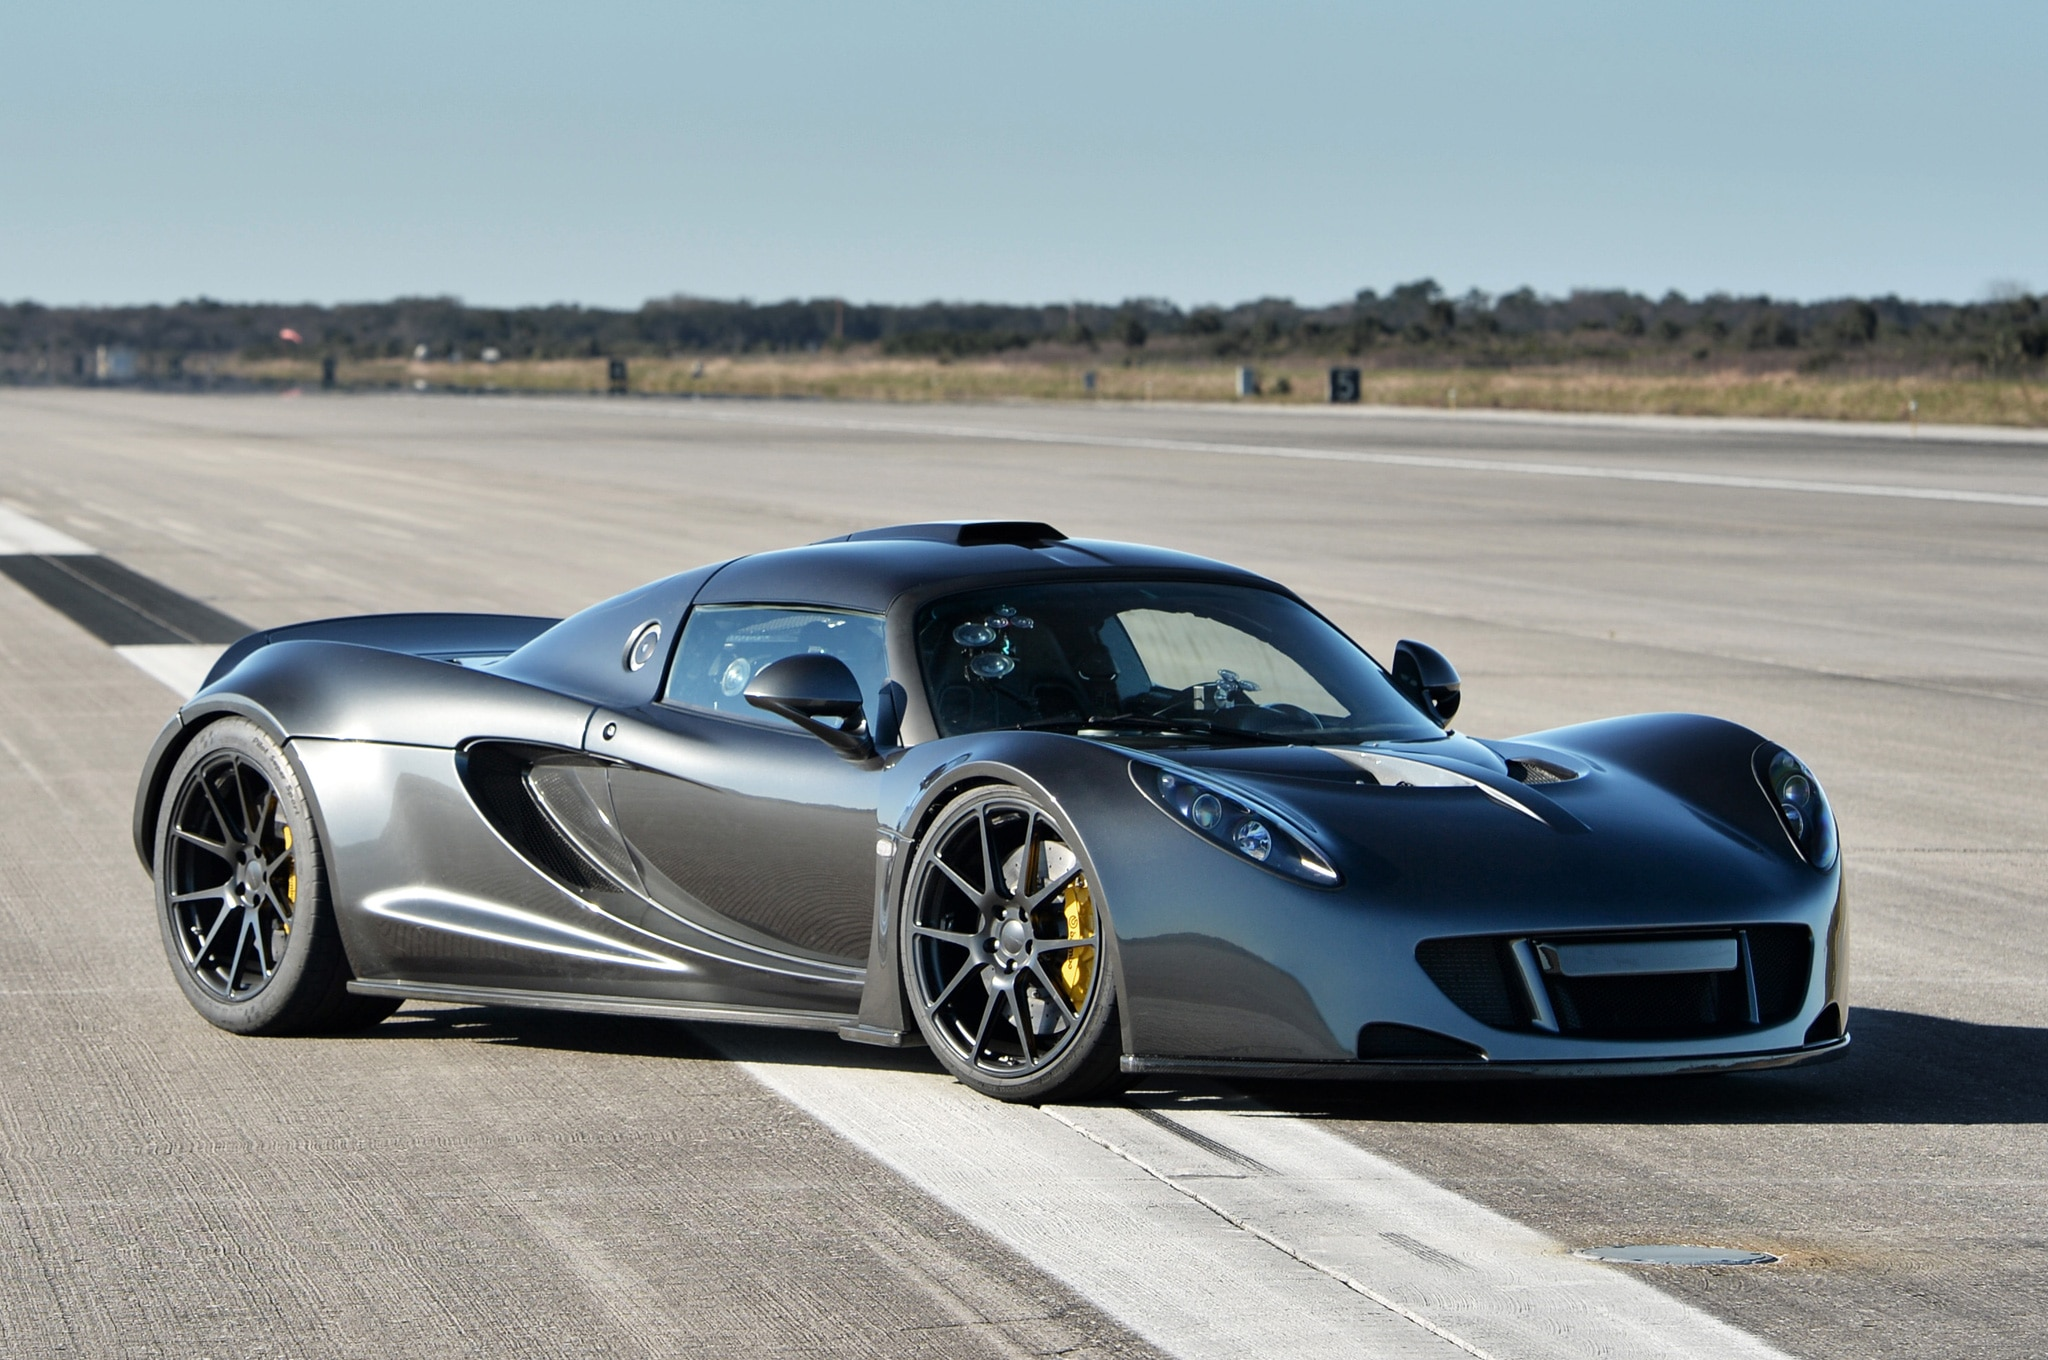 Venom Gt Price >> 1400-HP+ Hennessey Venom F5 Confirmed for 2016, 290 MPH Possible